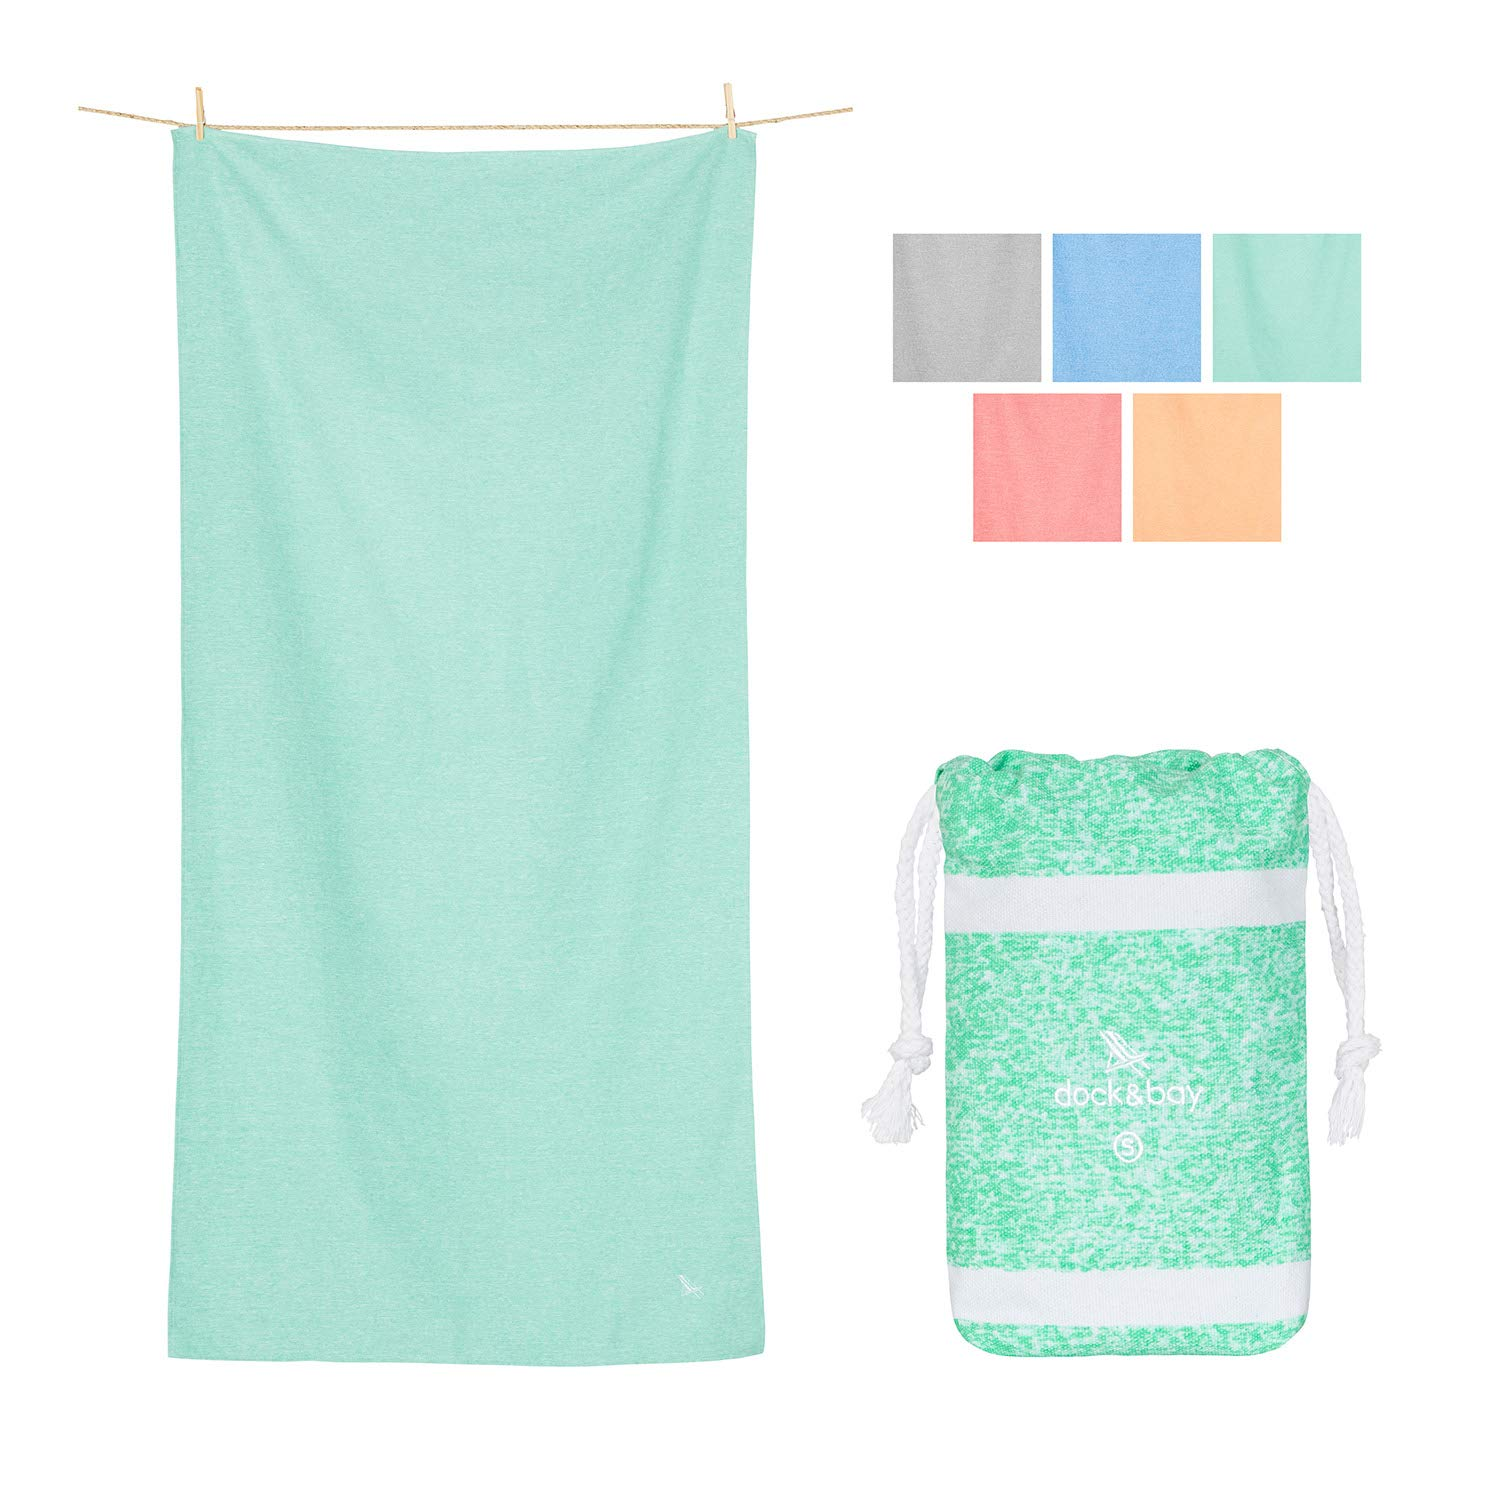 Small Quick Dry Gym Towel - Rainforest Green, 40 x 20 - Gym, Sports & Workout - Microfibre Gym Towels